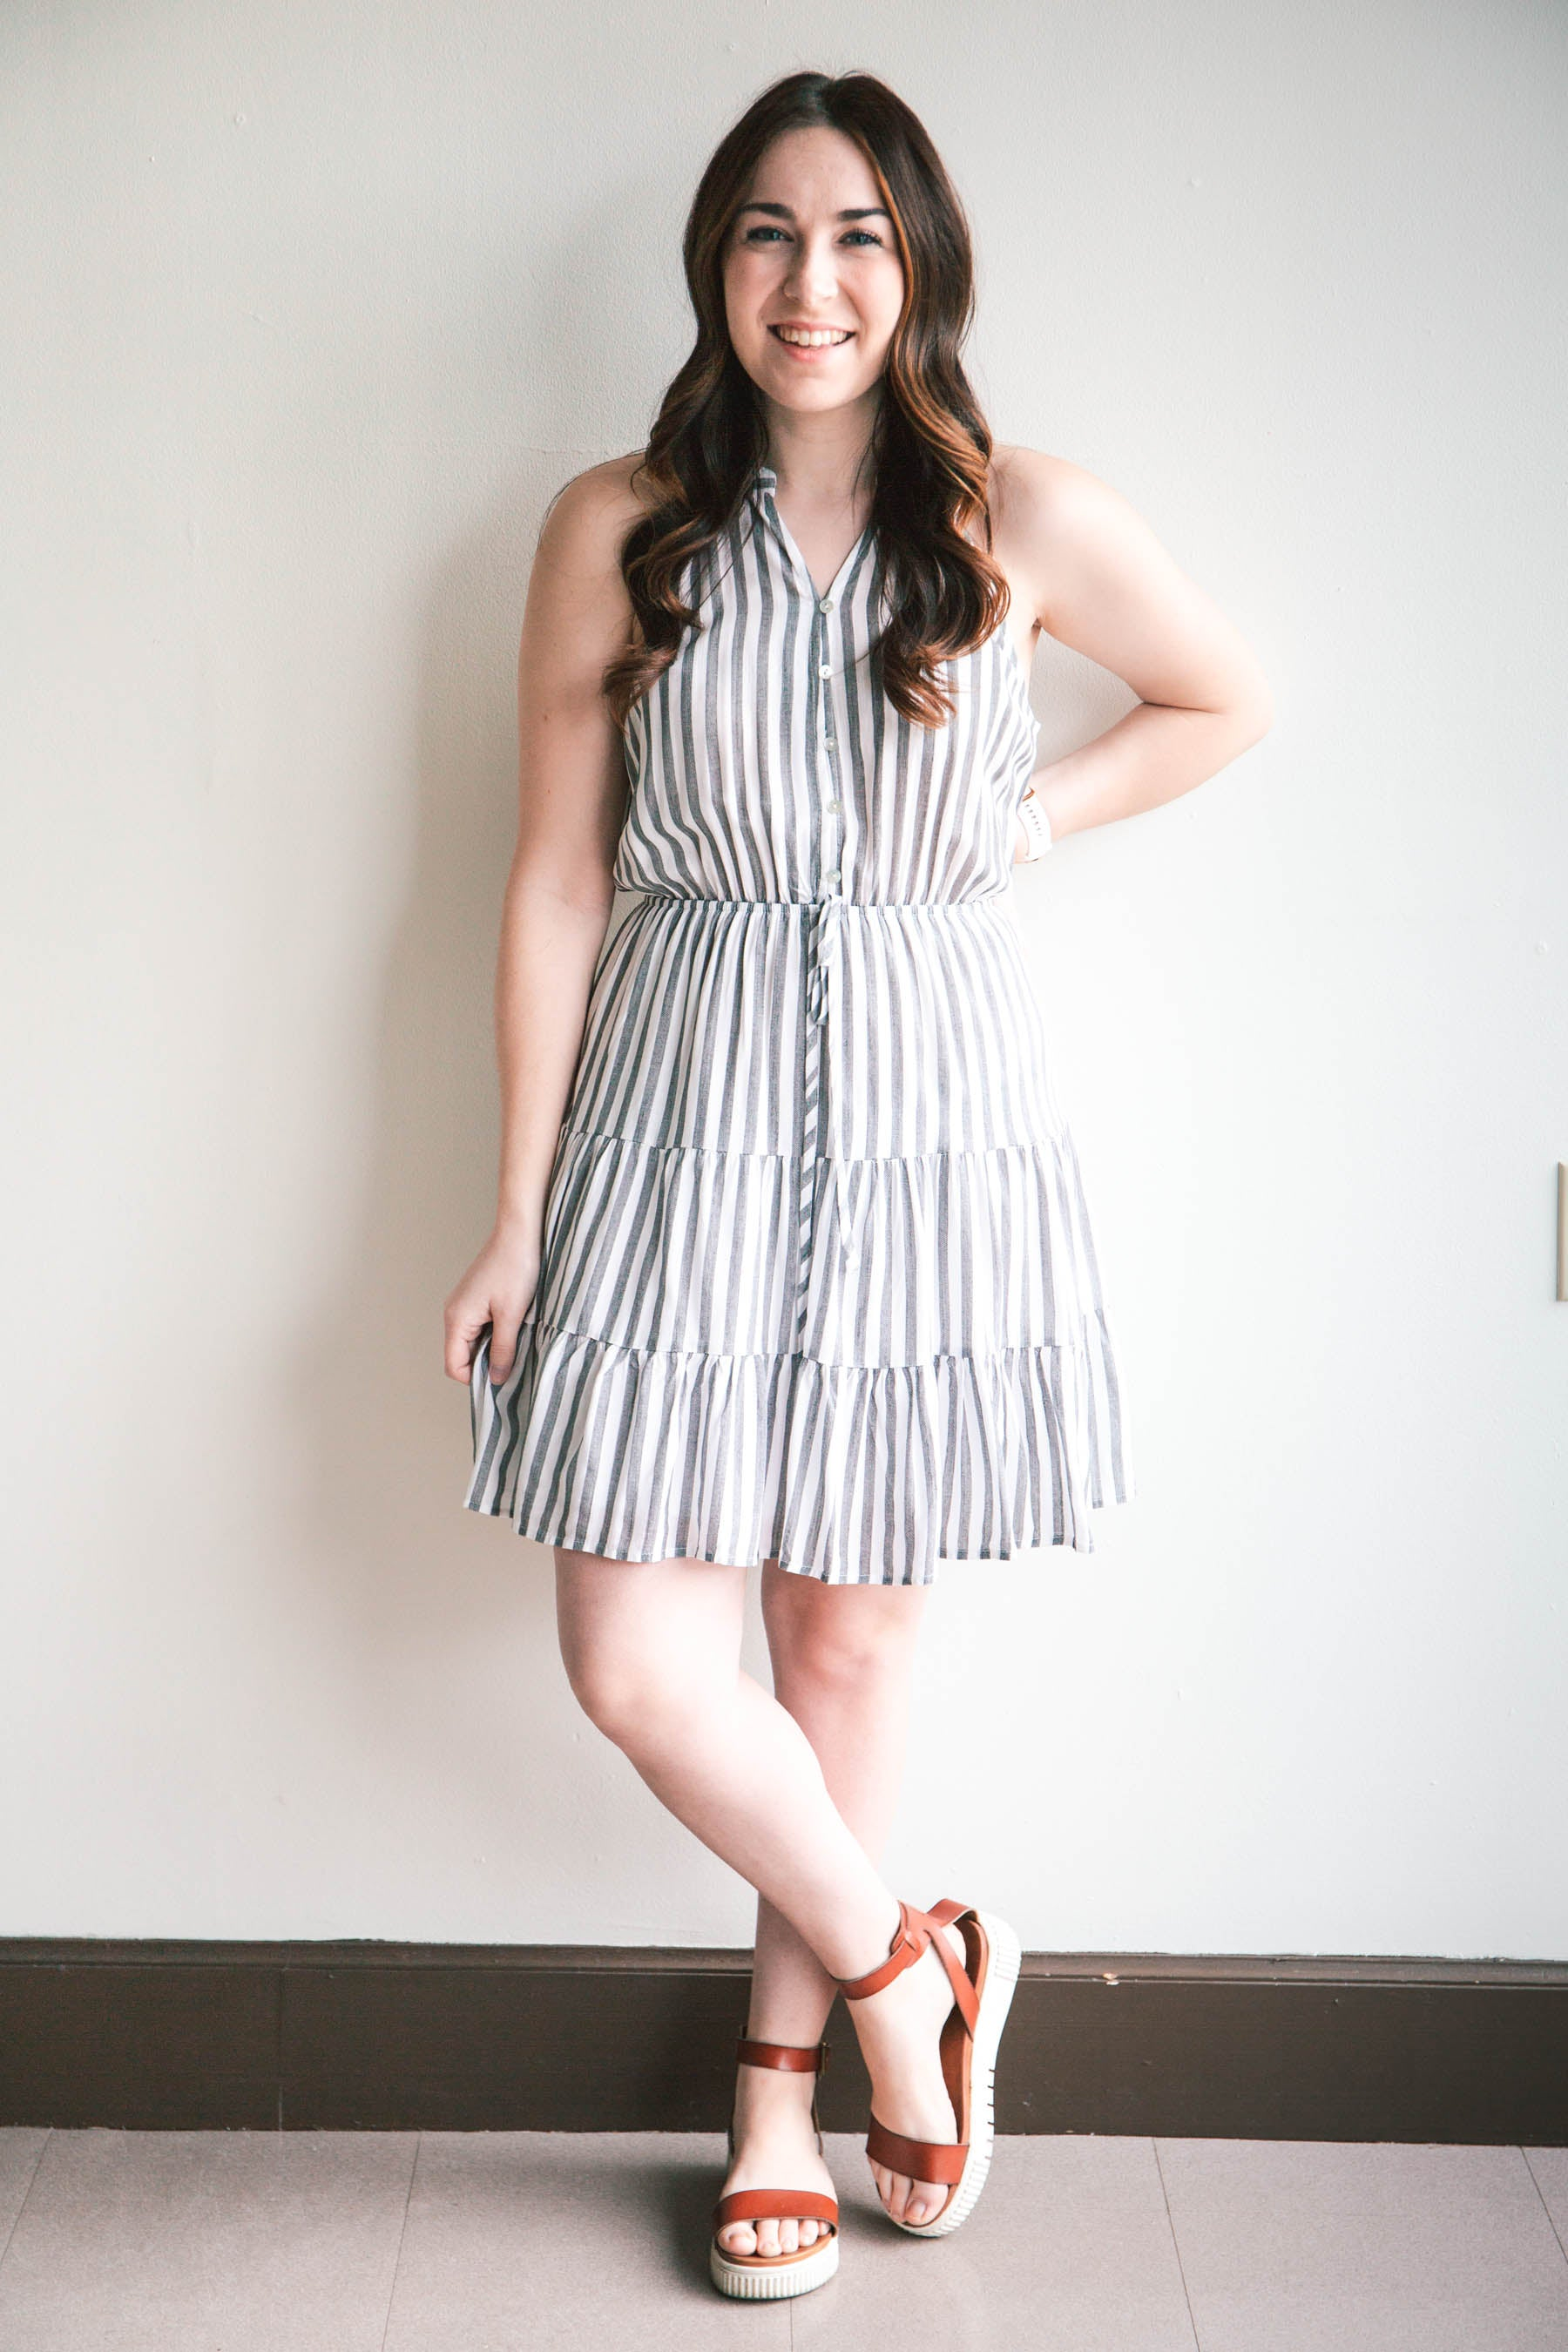 Sarah Striped Dress (FINAL SALE)